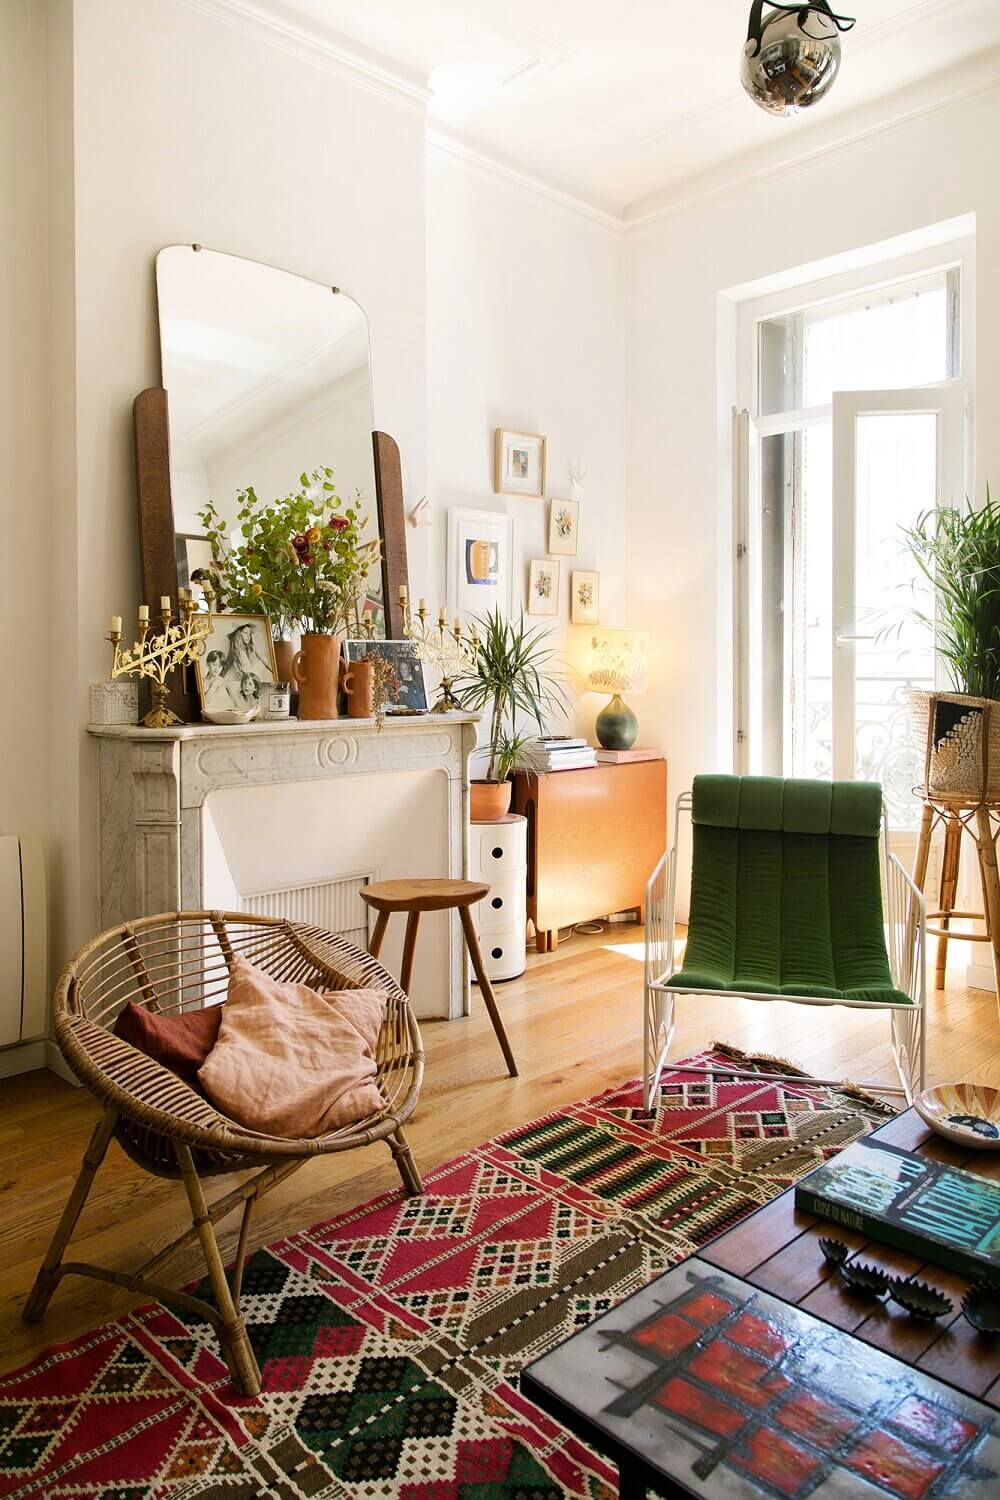 A Cozy Apartment in Marseille Filled With Art and Ceramics